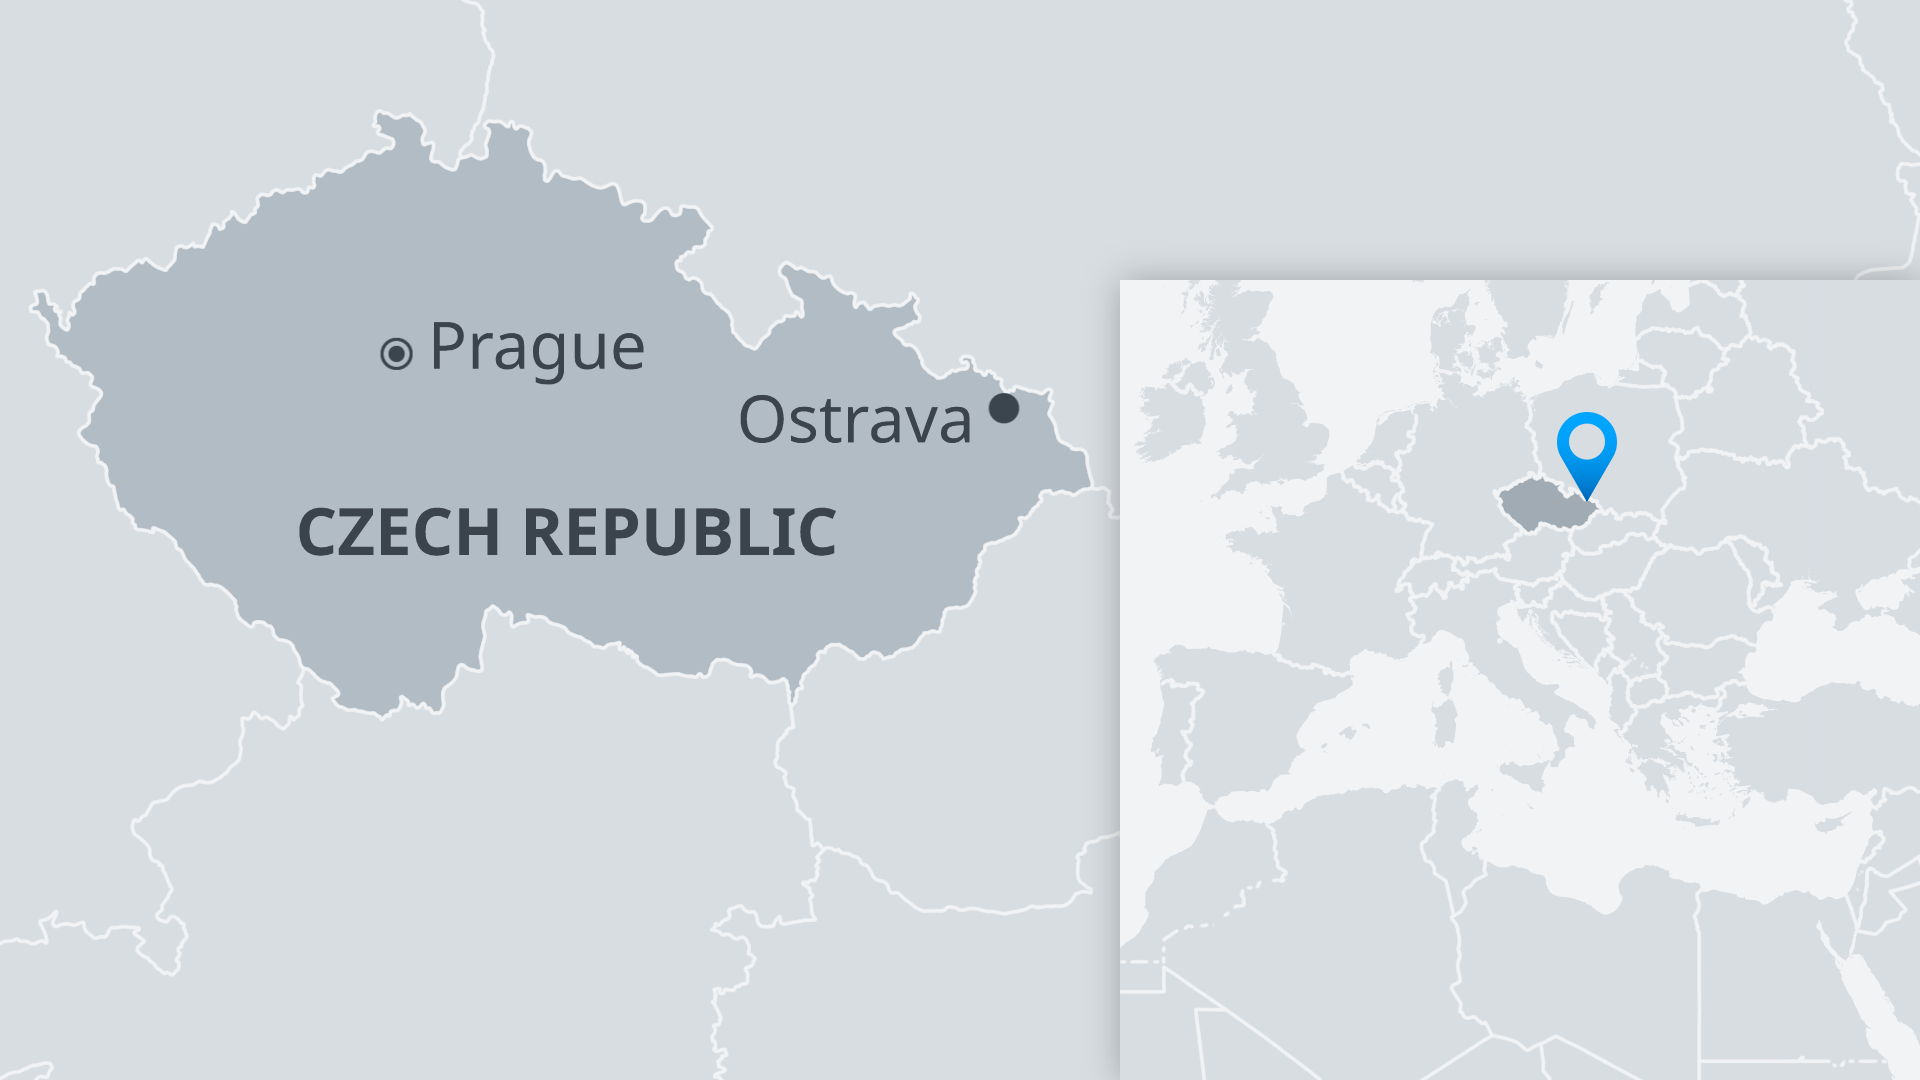 At least four dead in shooting in Czech Republic